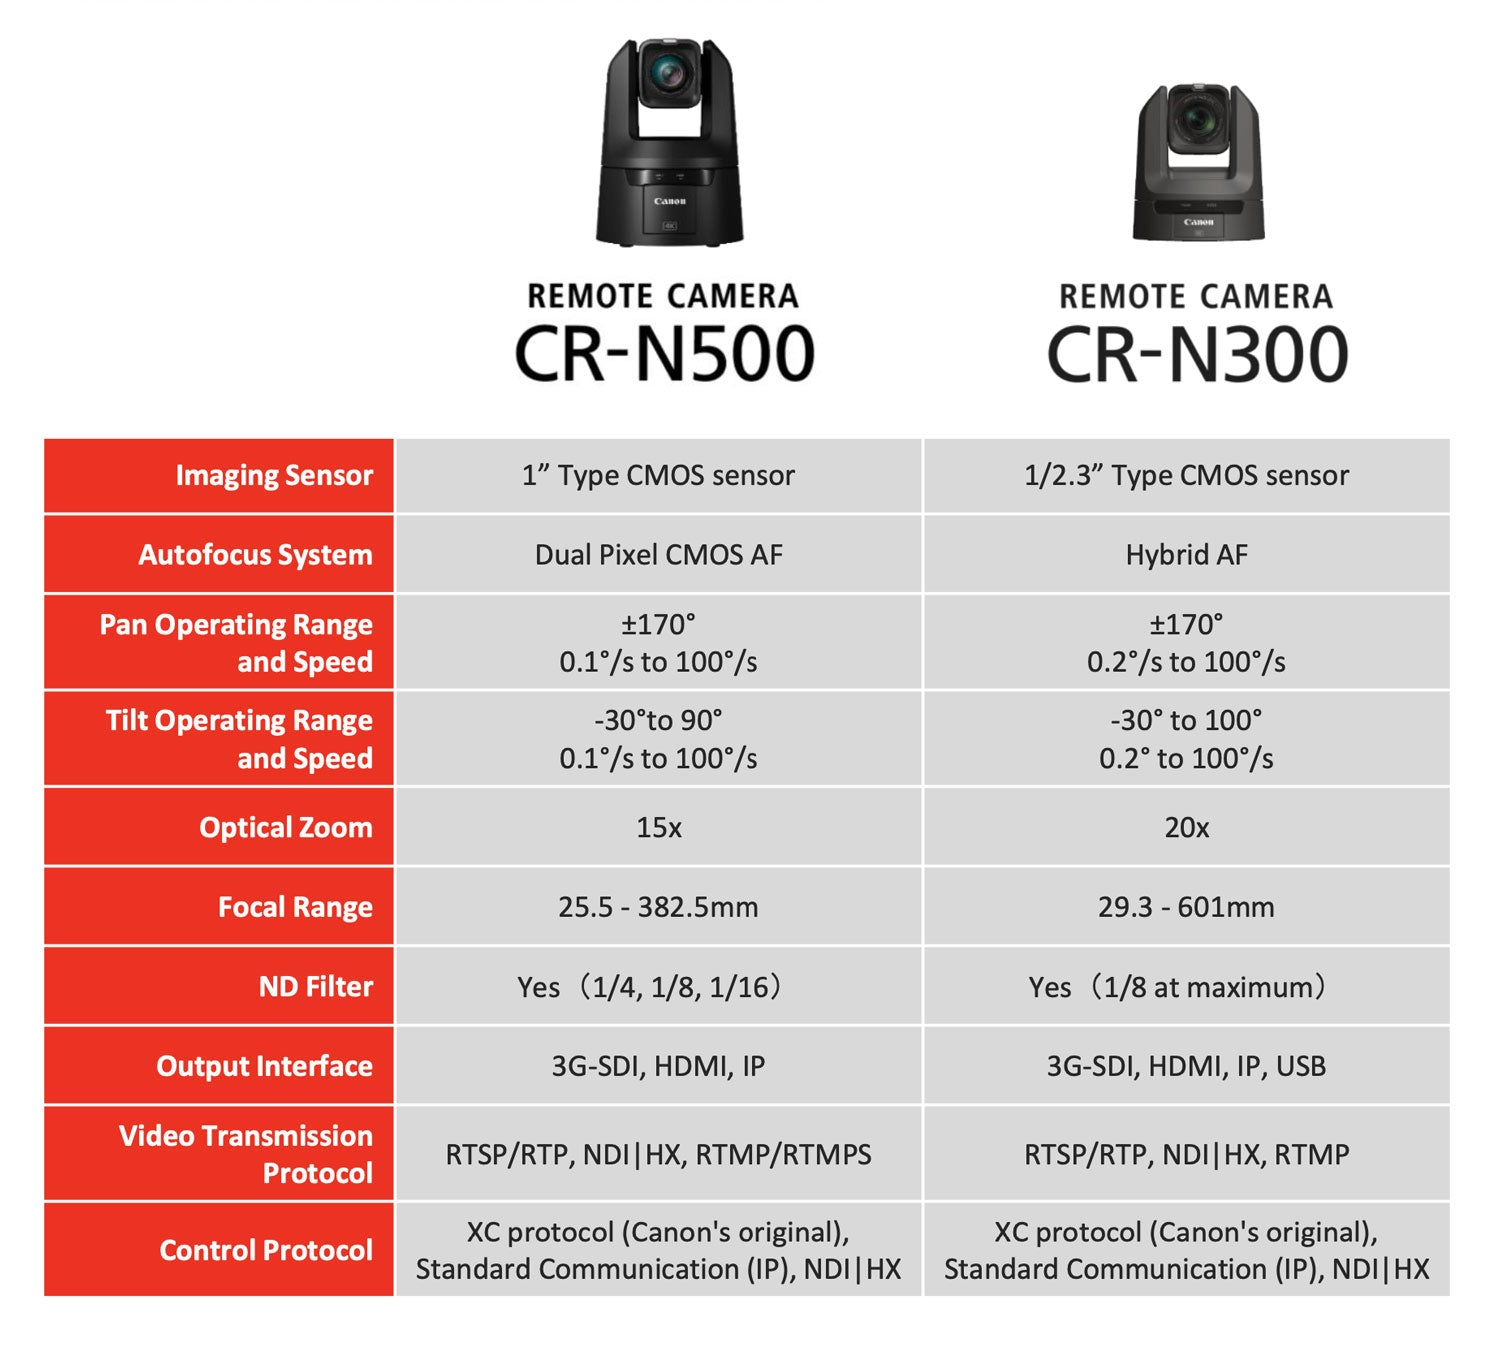 Canon CR-N500 and CR-N300 product comparison